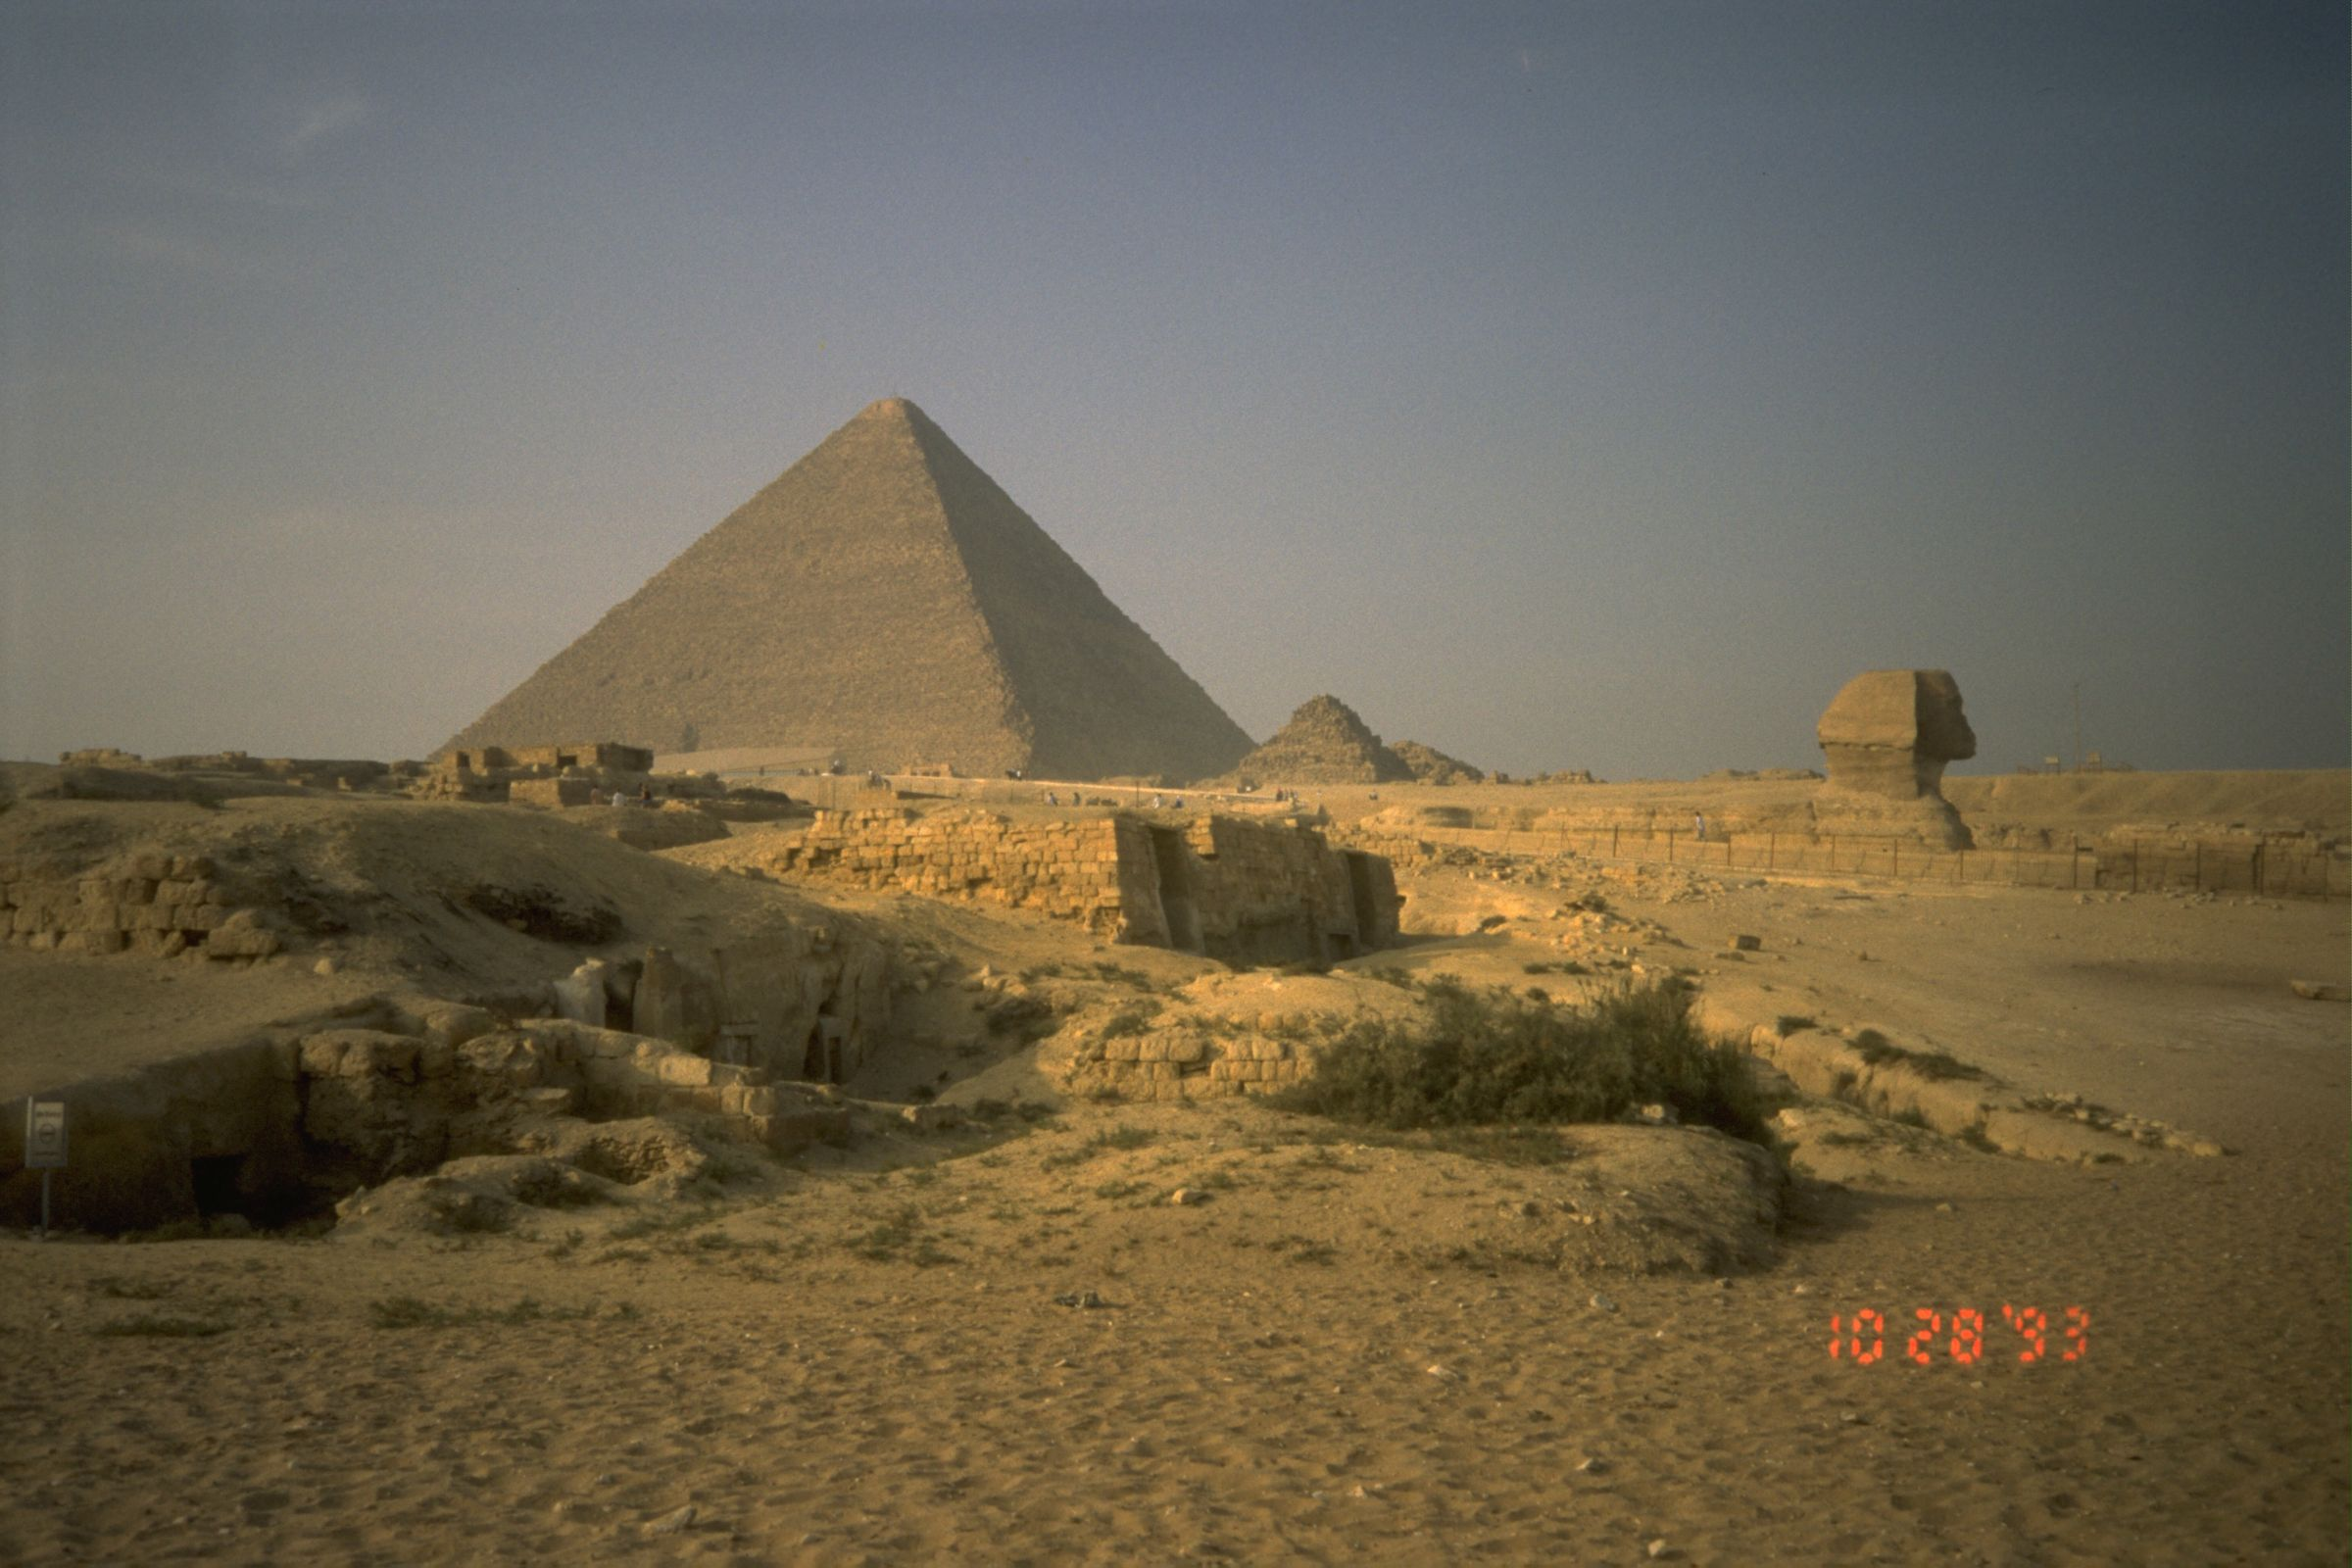 Central Field (Hassan): Site: Giza; View: Khufu pyramid, Sphinx